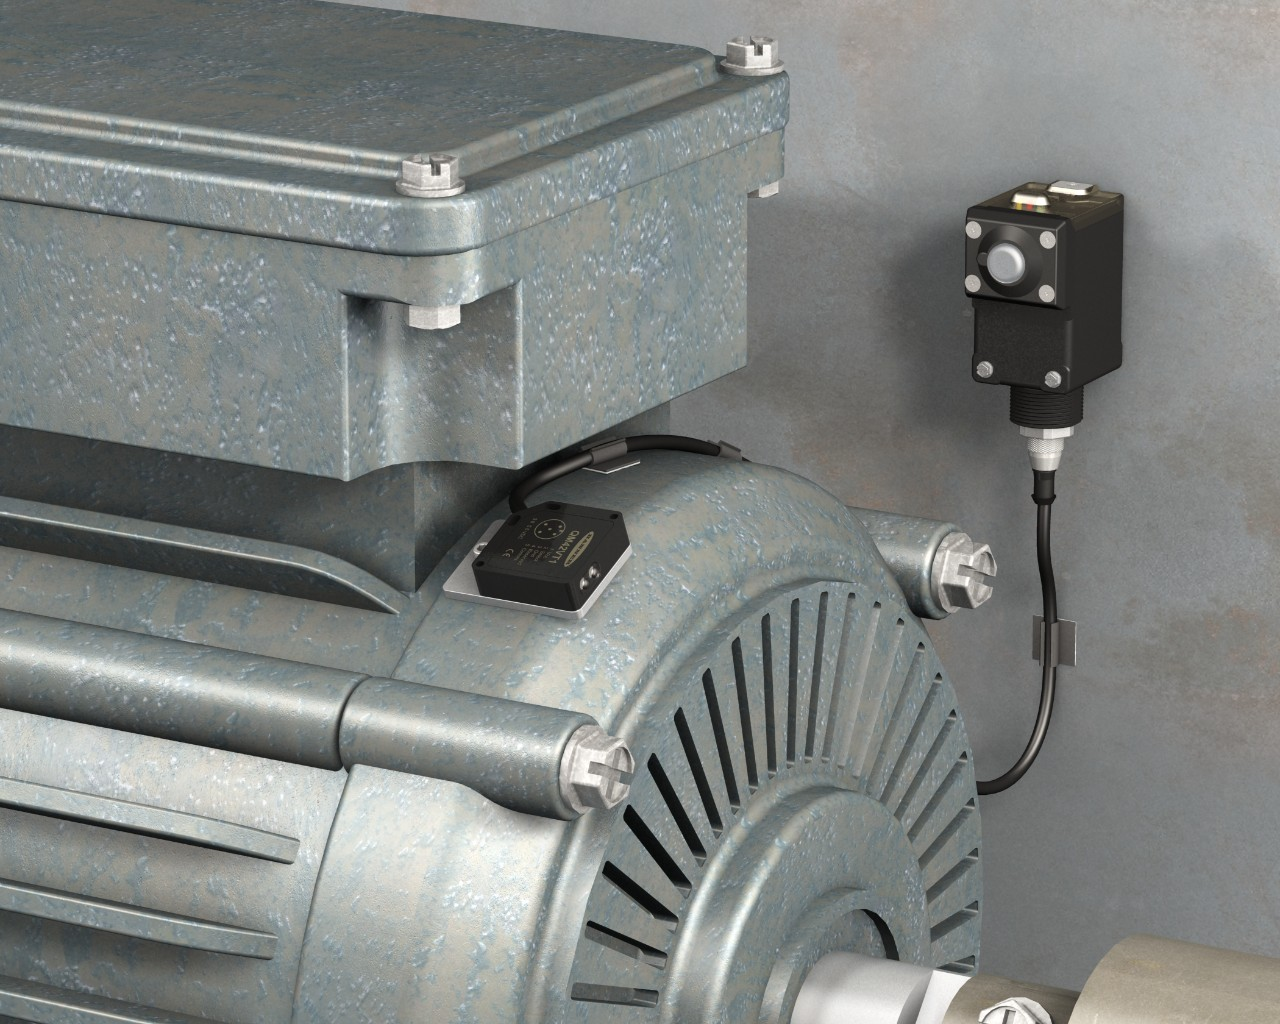 QM42VT1 Vibration Detection Motor